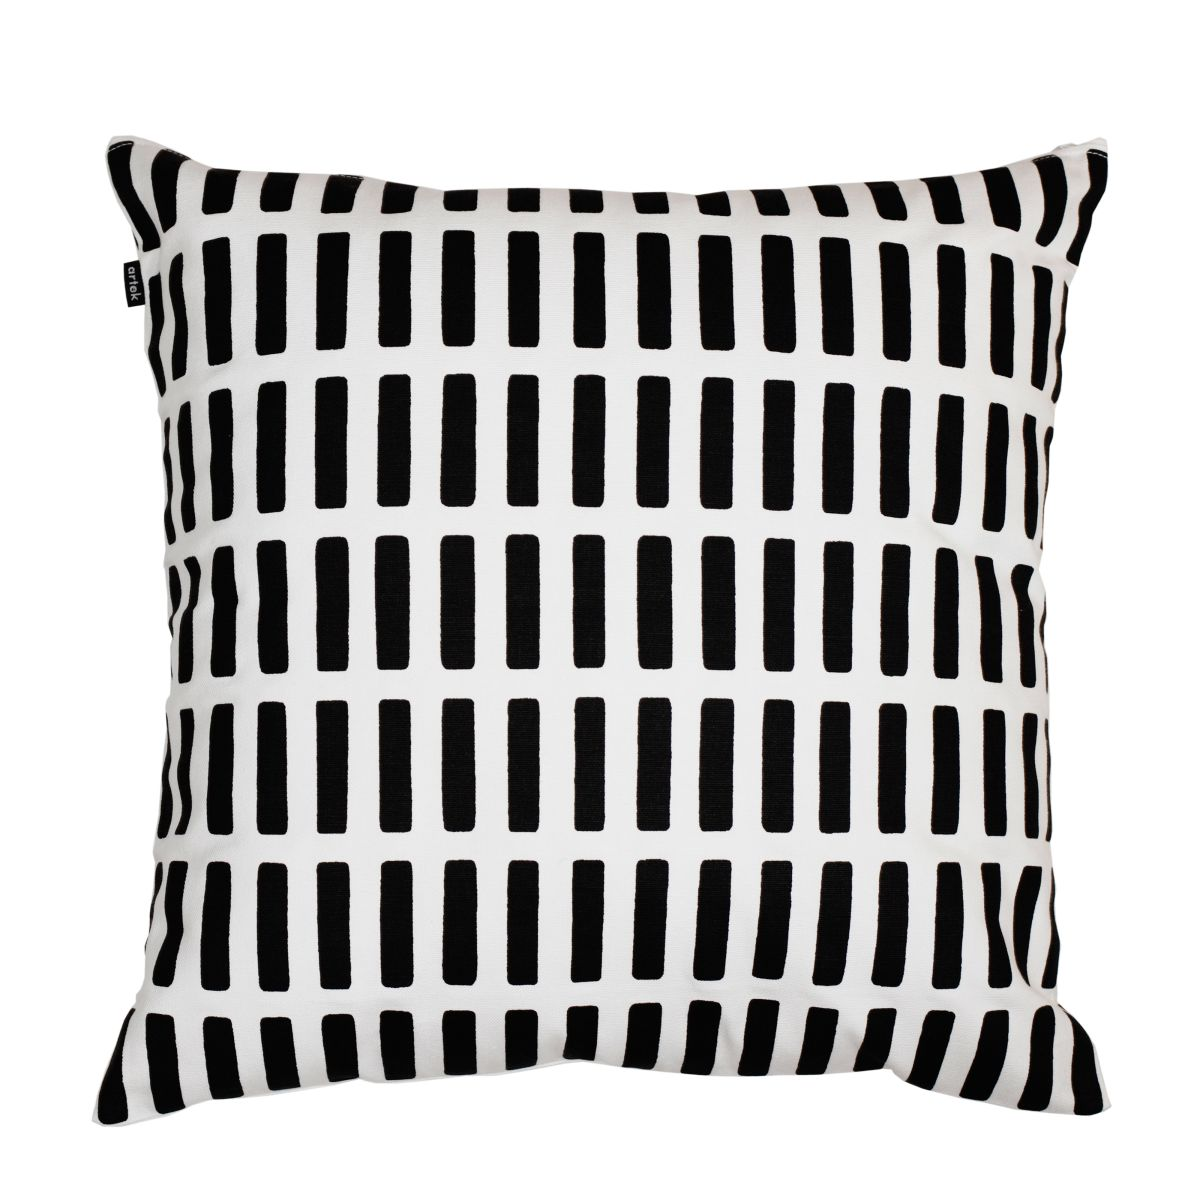 Siena Cushion Cover white / black_WEB